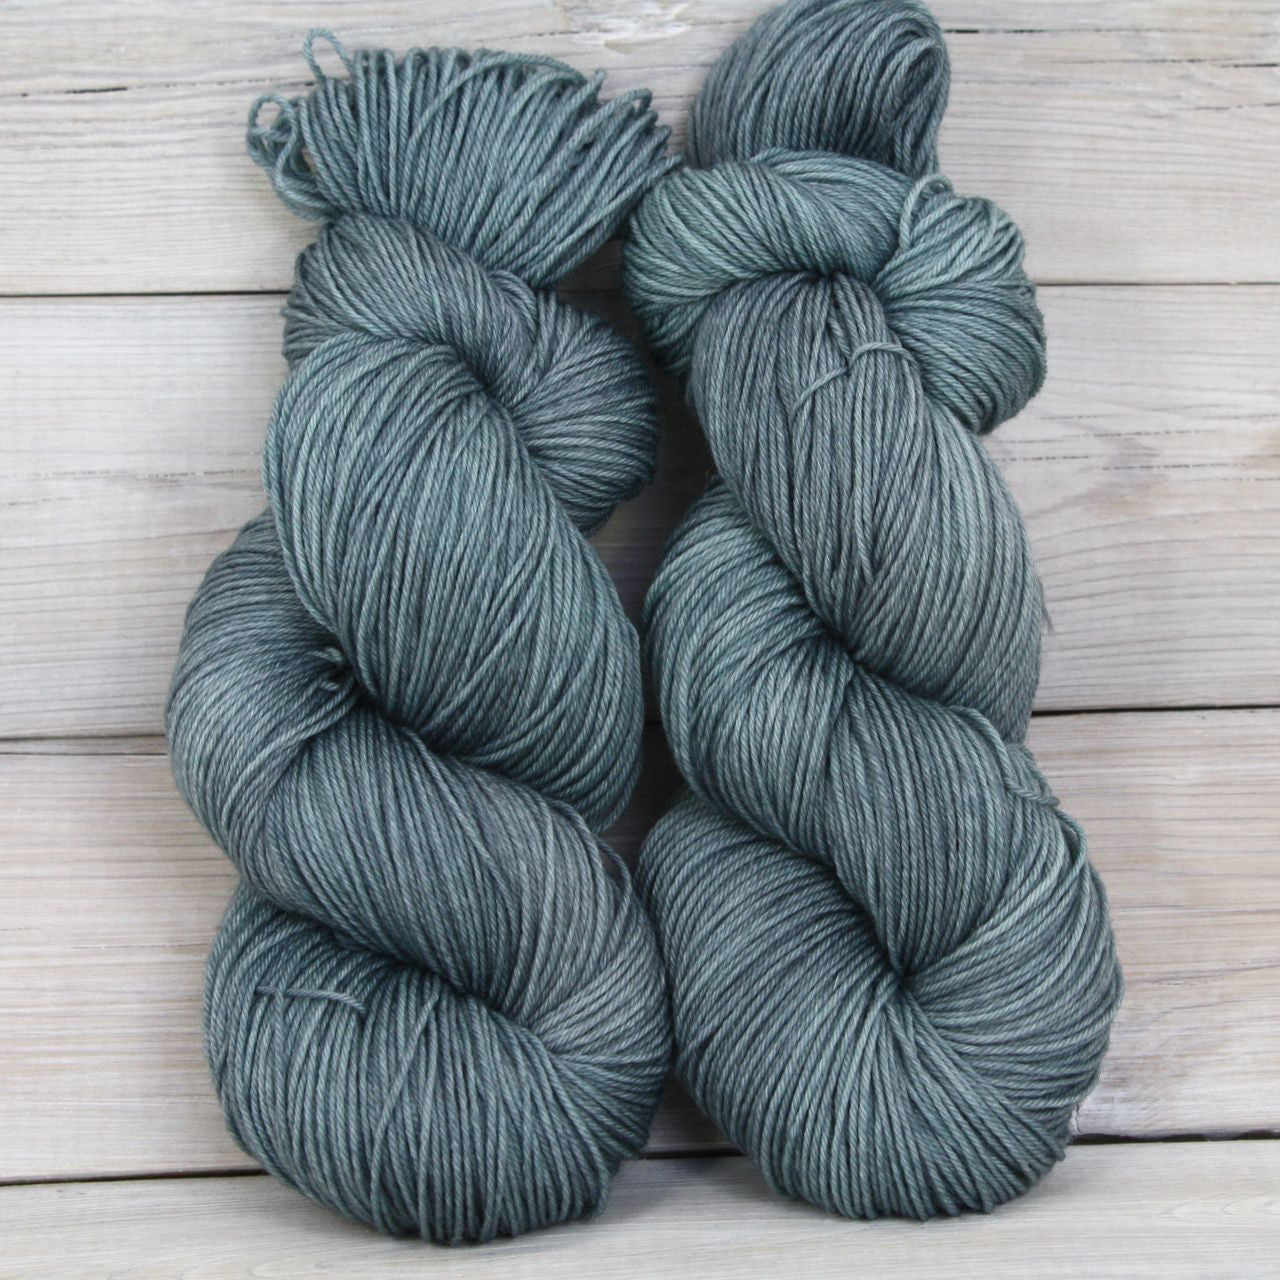 Altair Yarn | Colorway: Harbor